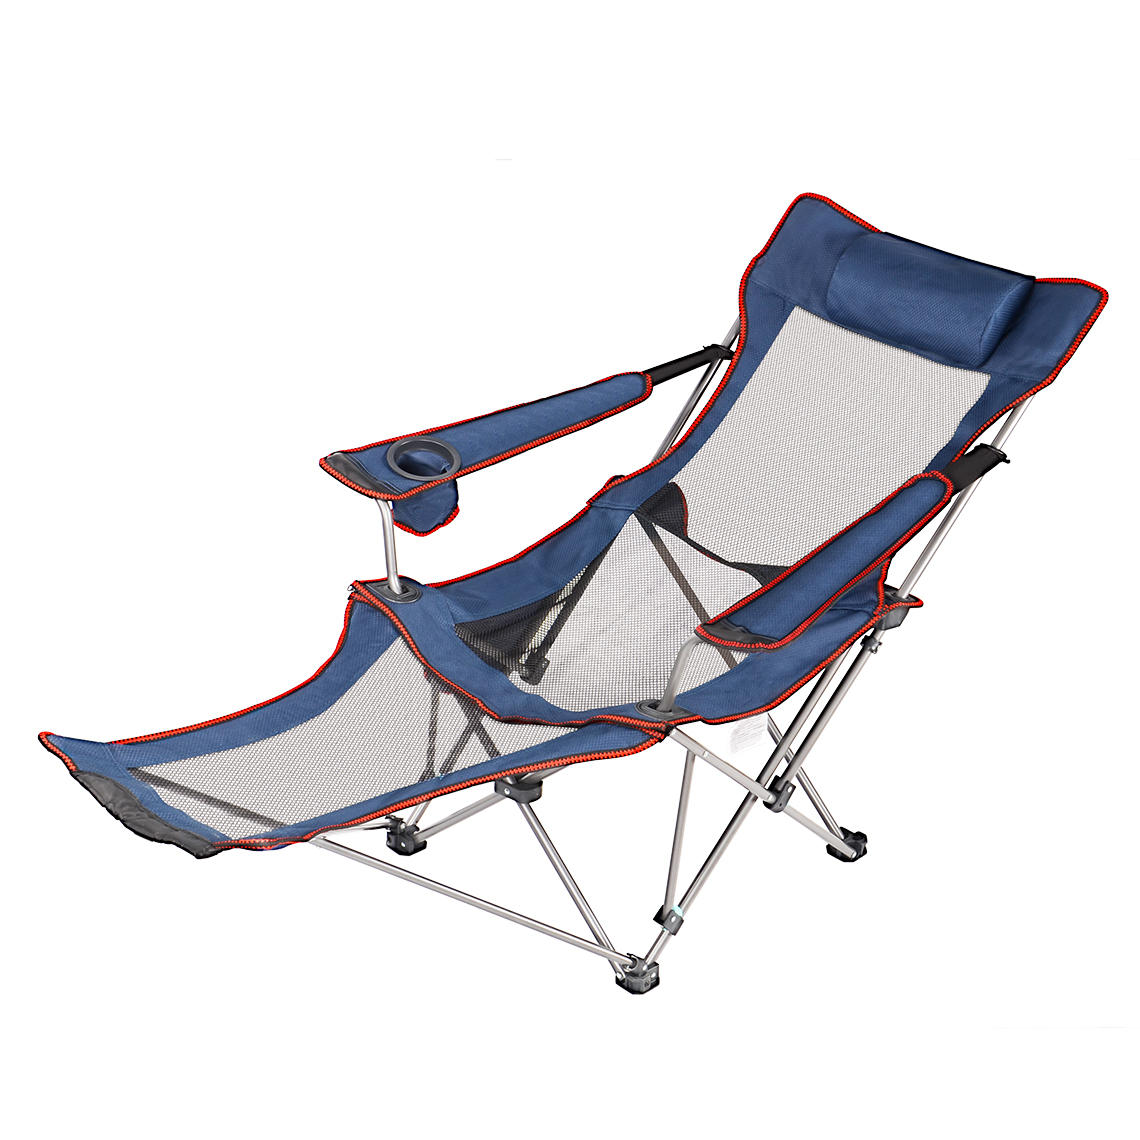 A07b1 livingbasics lvc 51930 all camping backpacking reclining lounging camping folding chair with headrest and footrest livingbasics